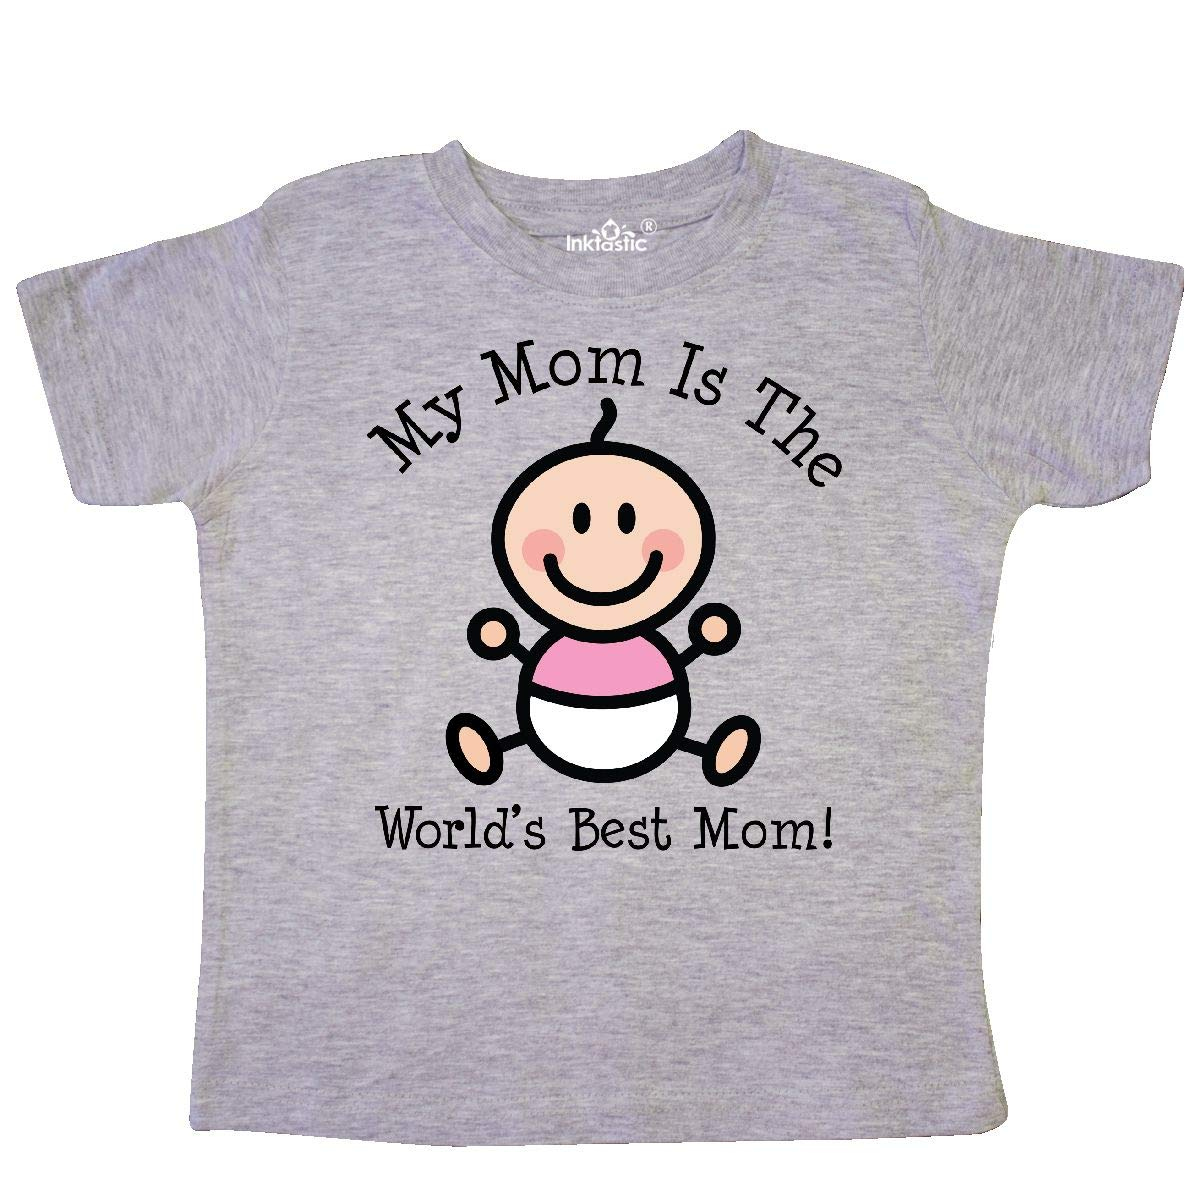 inktastic Baby Girl 1st Mothers Day Toddler T-Shirt